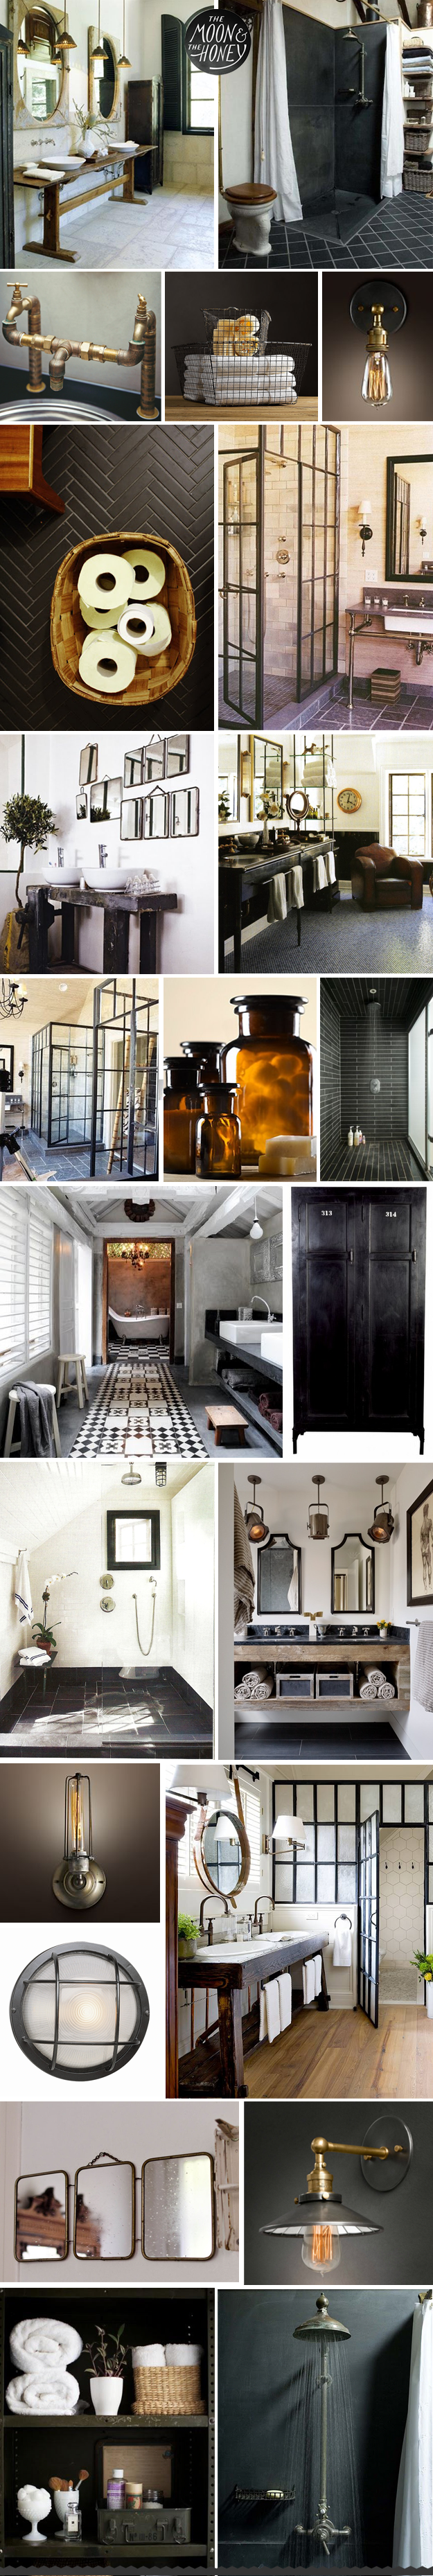 love the black subway tile (not shin) in the shower with gray grout. also love the black and white tile in the pic on the left laid as a runner